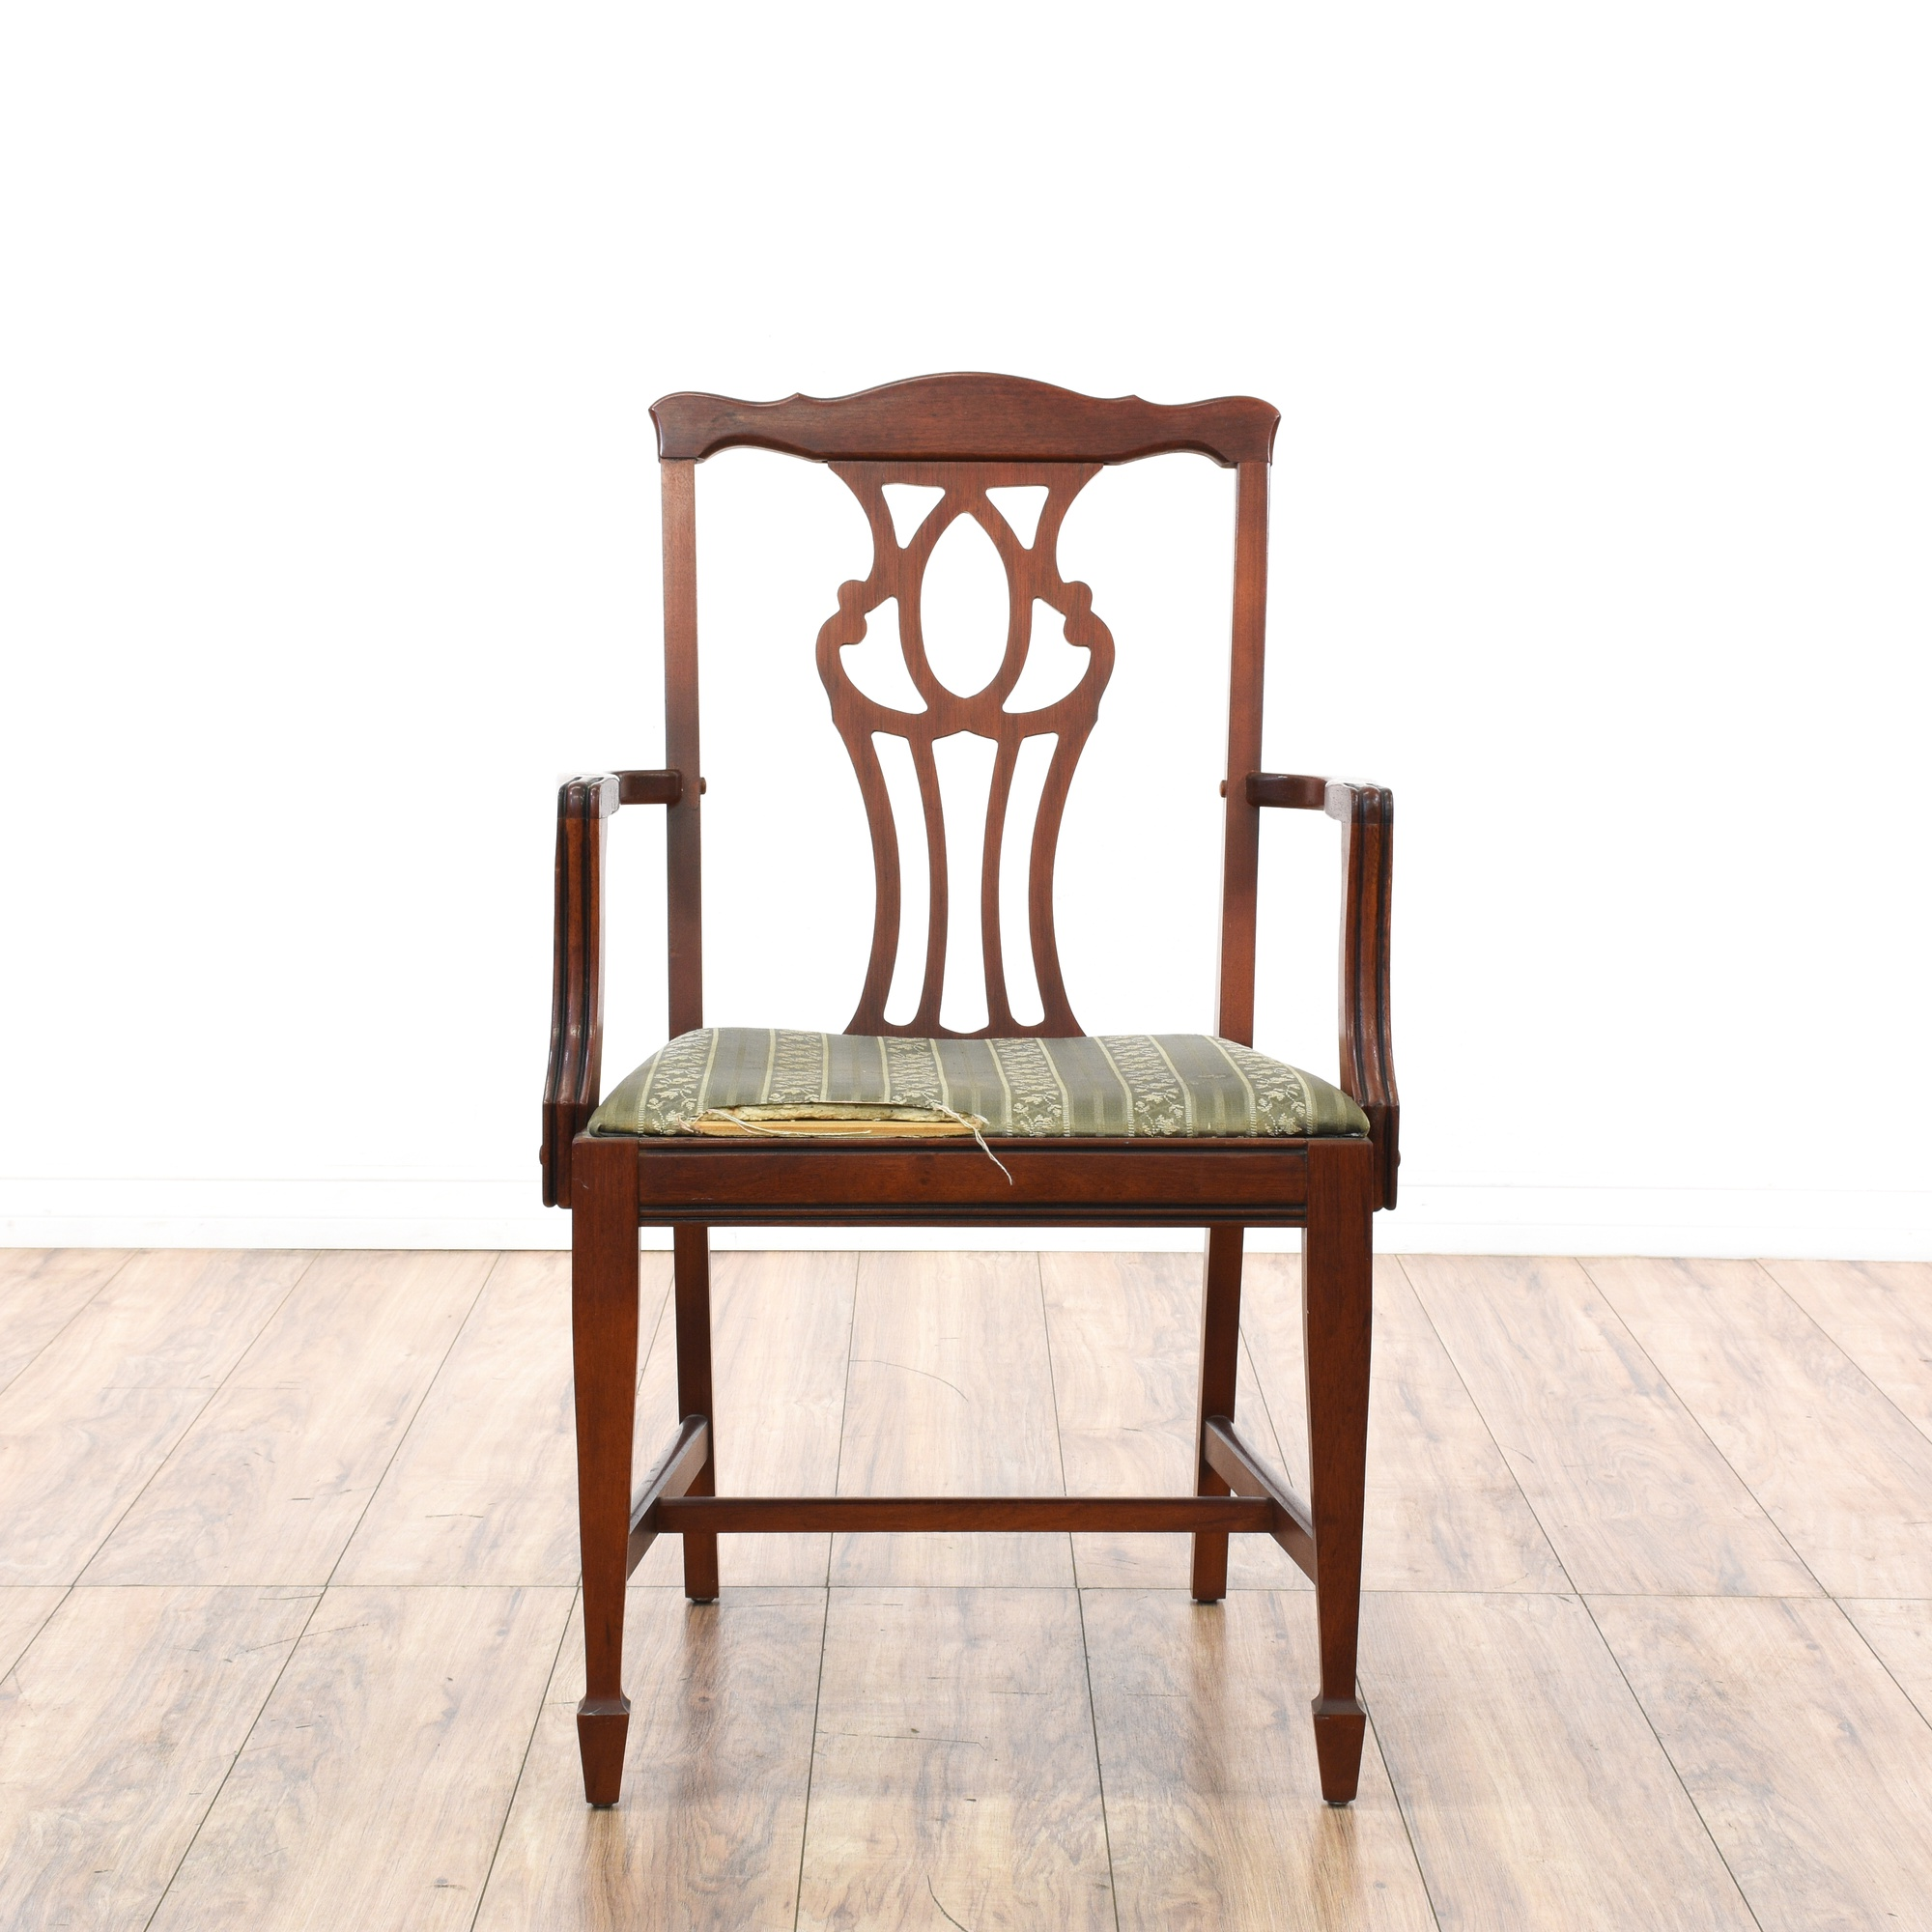 Dining Room Chairs San Diego: Set Of 6 Duncan Phyfe Sheraton Style Dining Chairs